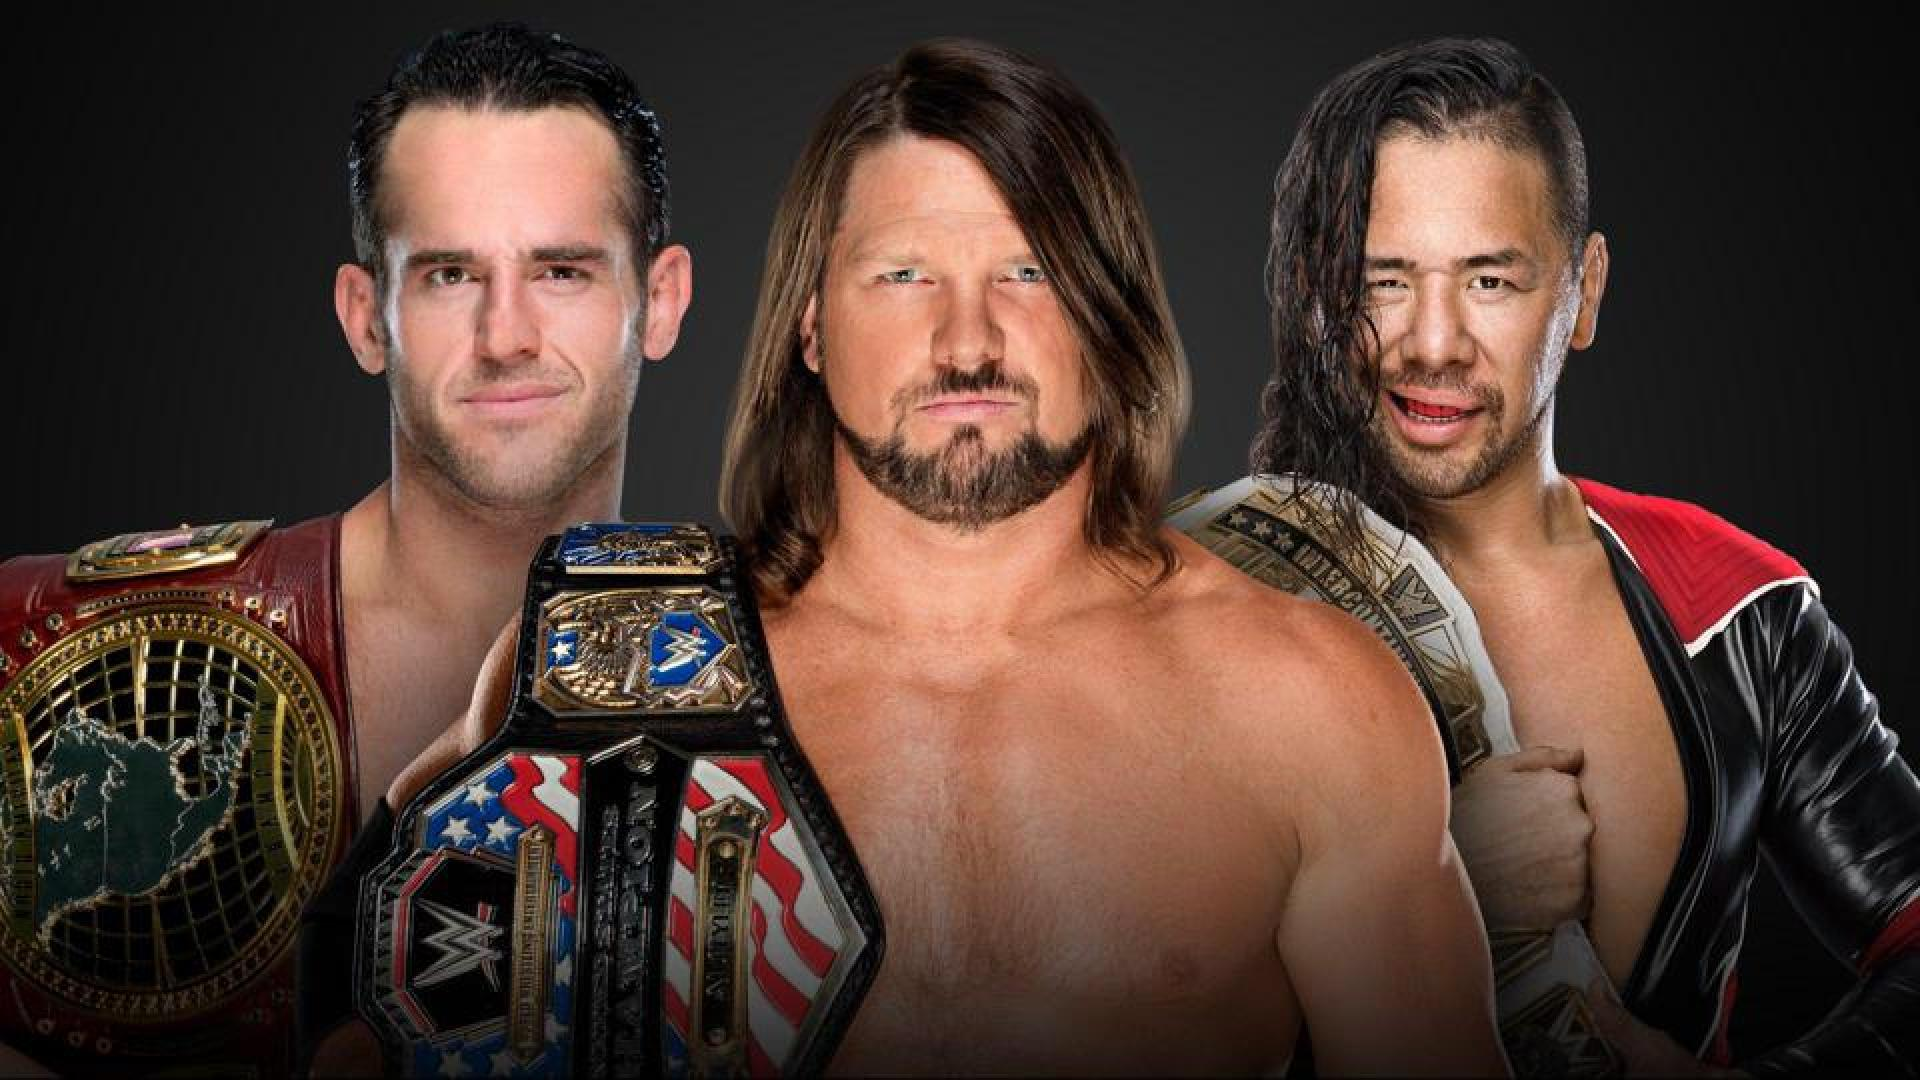 960x0 - NXT Has Saved The 2019 WWE Survivor Series, But There's One Problem